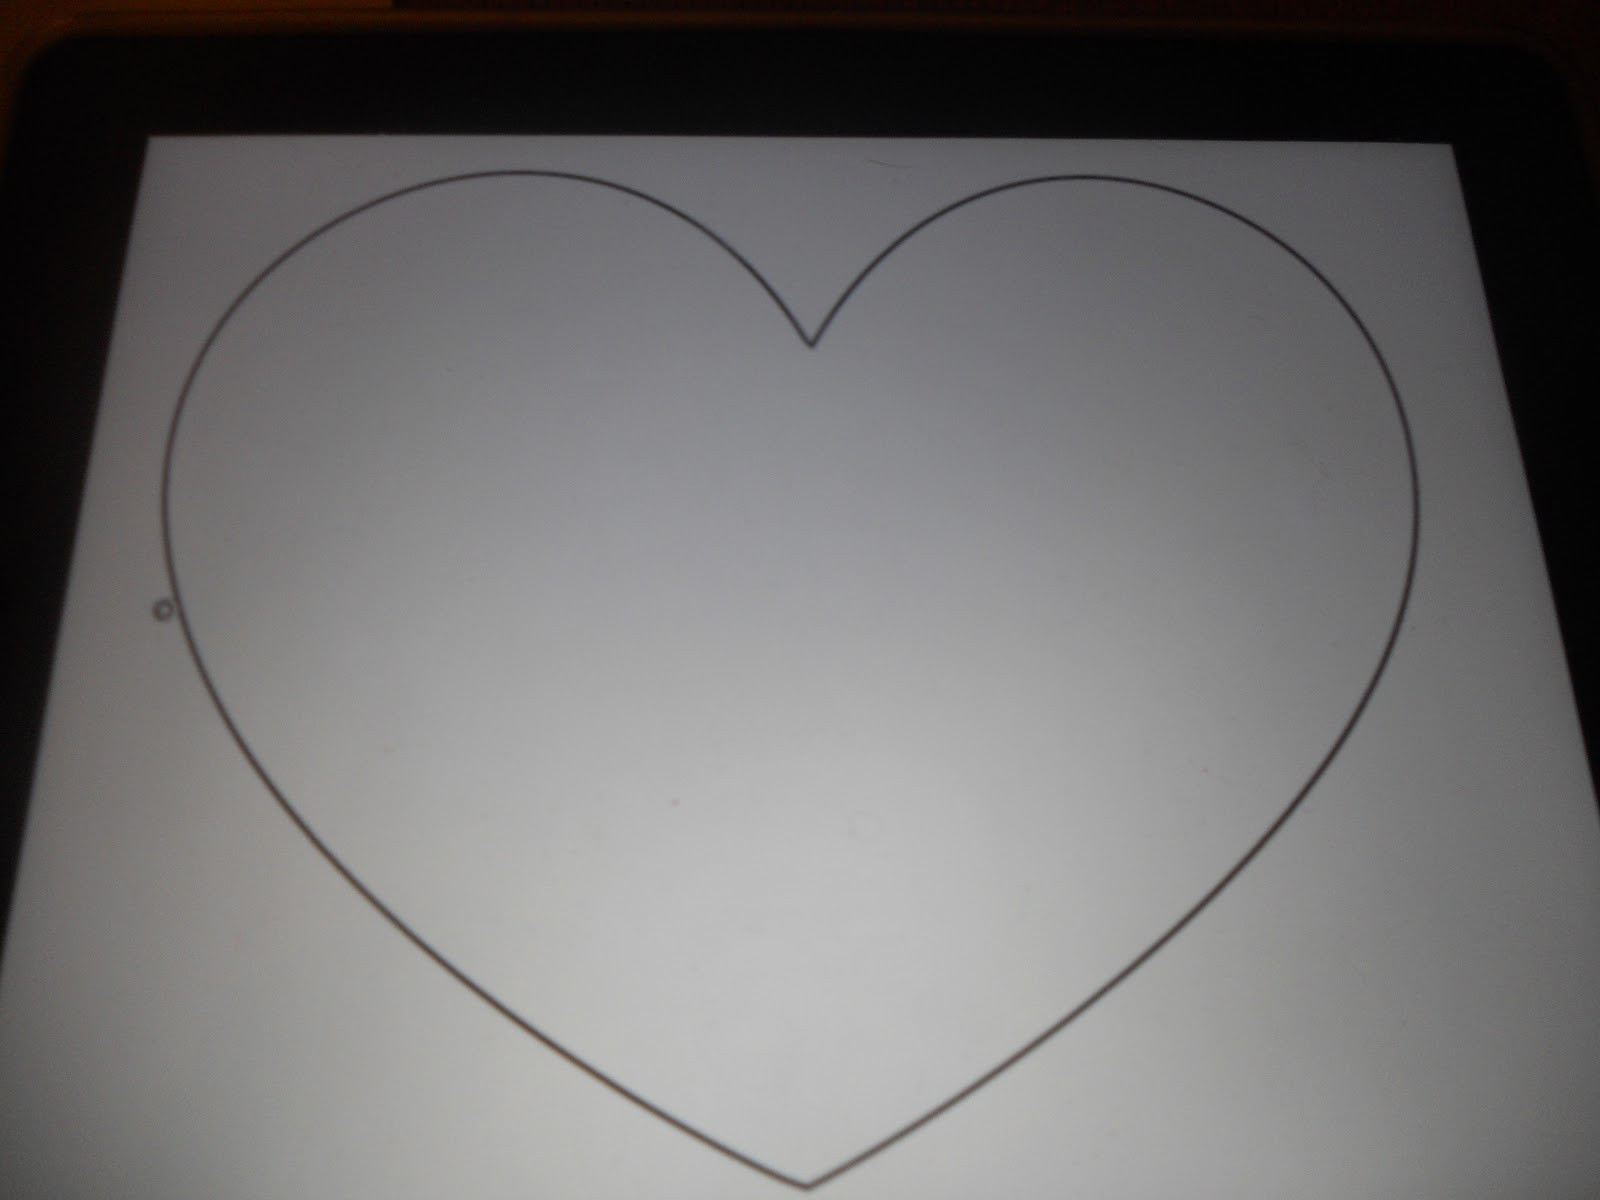 Large Heart Cut Out Template Search Results Calendar 2015